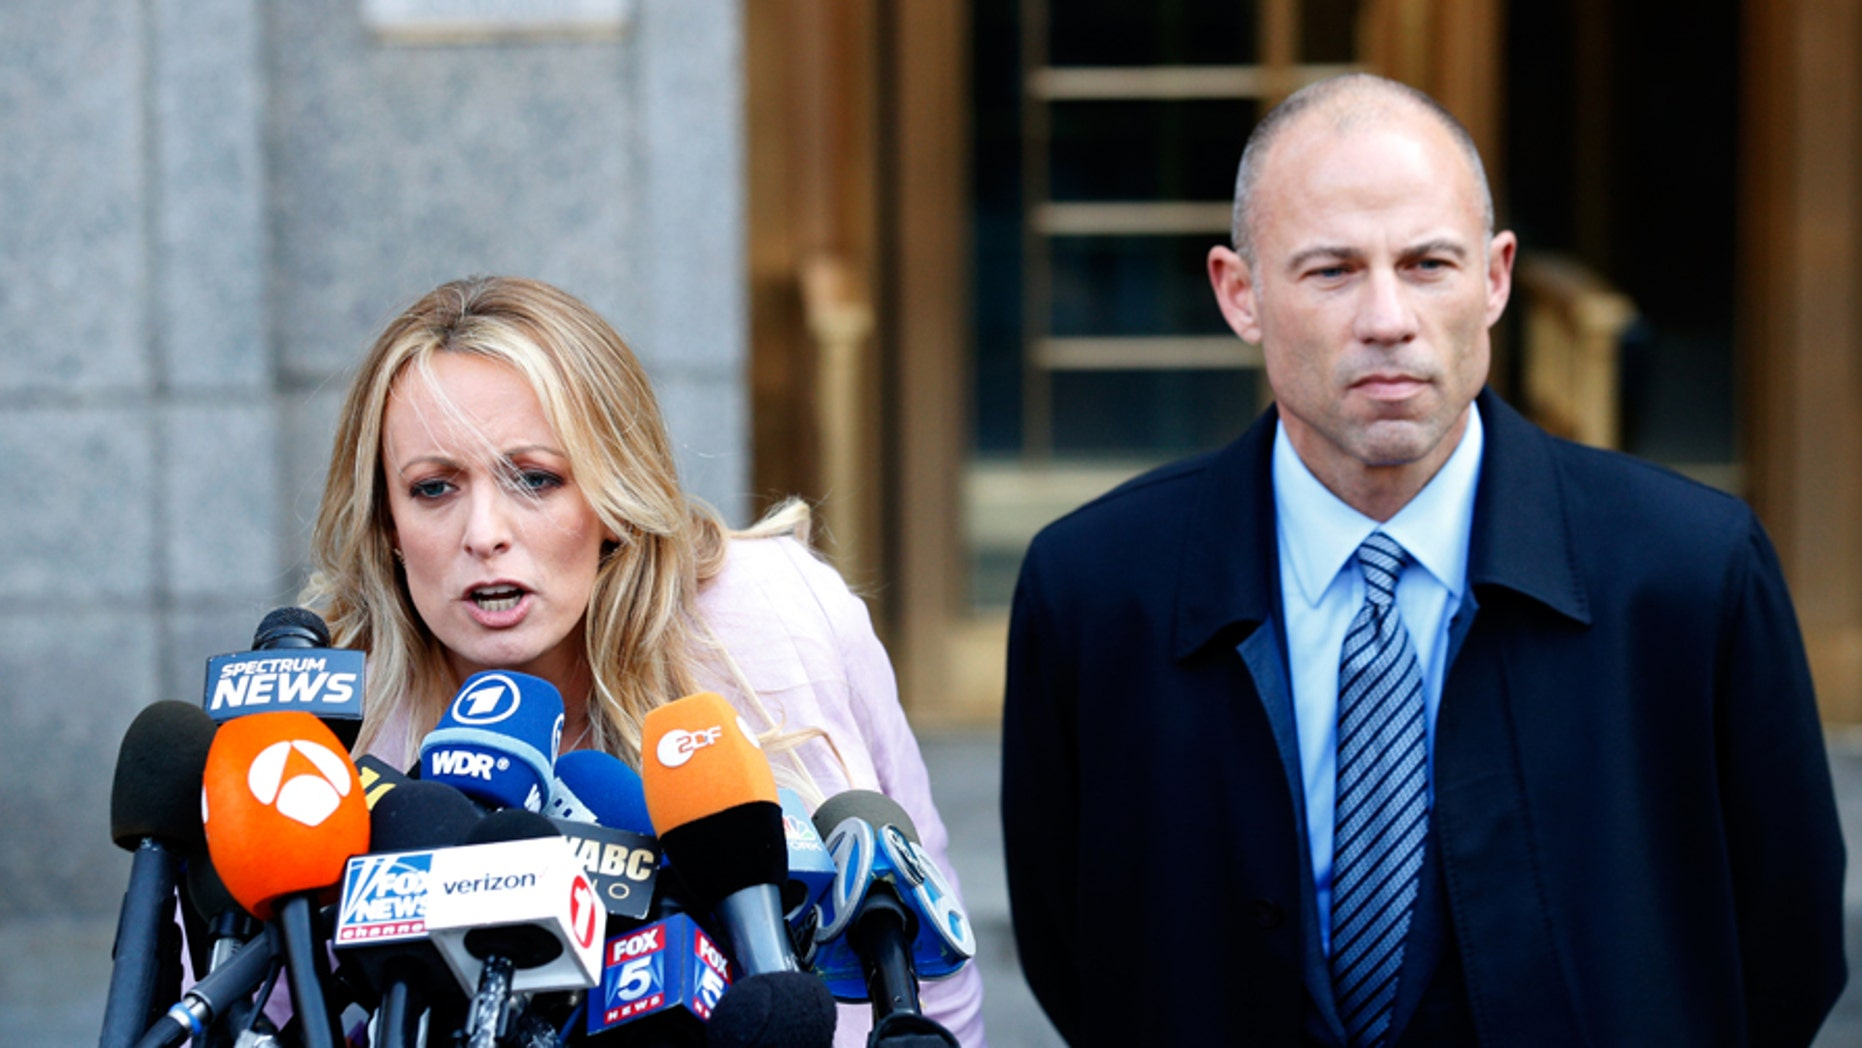 """Adult movie star Stormy Daniels, left, was paid $ 130,000 by Michael Cohen for his silence over alleged sexual contact with President Trump in 2006 in the days leading up to the 201<div class=""""e3lan e3lan-in-post1""""><script async src=""""//pagead2.googlesyndication.com/pagead/js/adsbygoogle.js""""></script> <!-- Text_Display_Responsive --> <ins class=""""adsbygoogle""""      style=""""display:block""""      data-ad-client=""""ca-pub-6192903739091894""""      data-ad-slot=""""3136787391""""      data-ad-format=""""auto""""      data-full-width-responsive=""""true""""></ins> <script> (adsbygoogle = window.adsbygoogle 